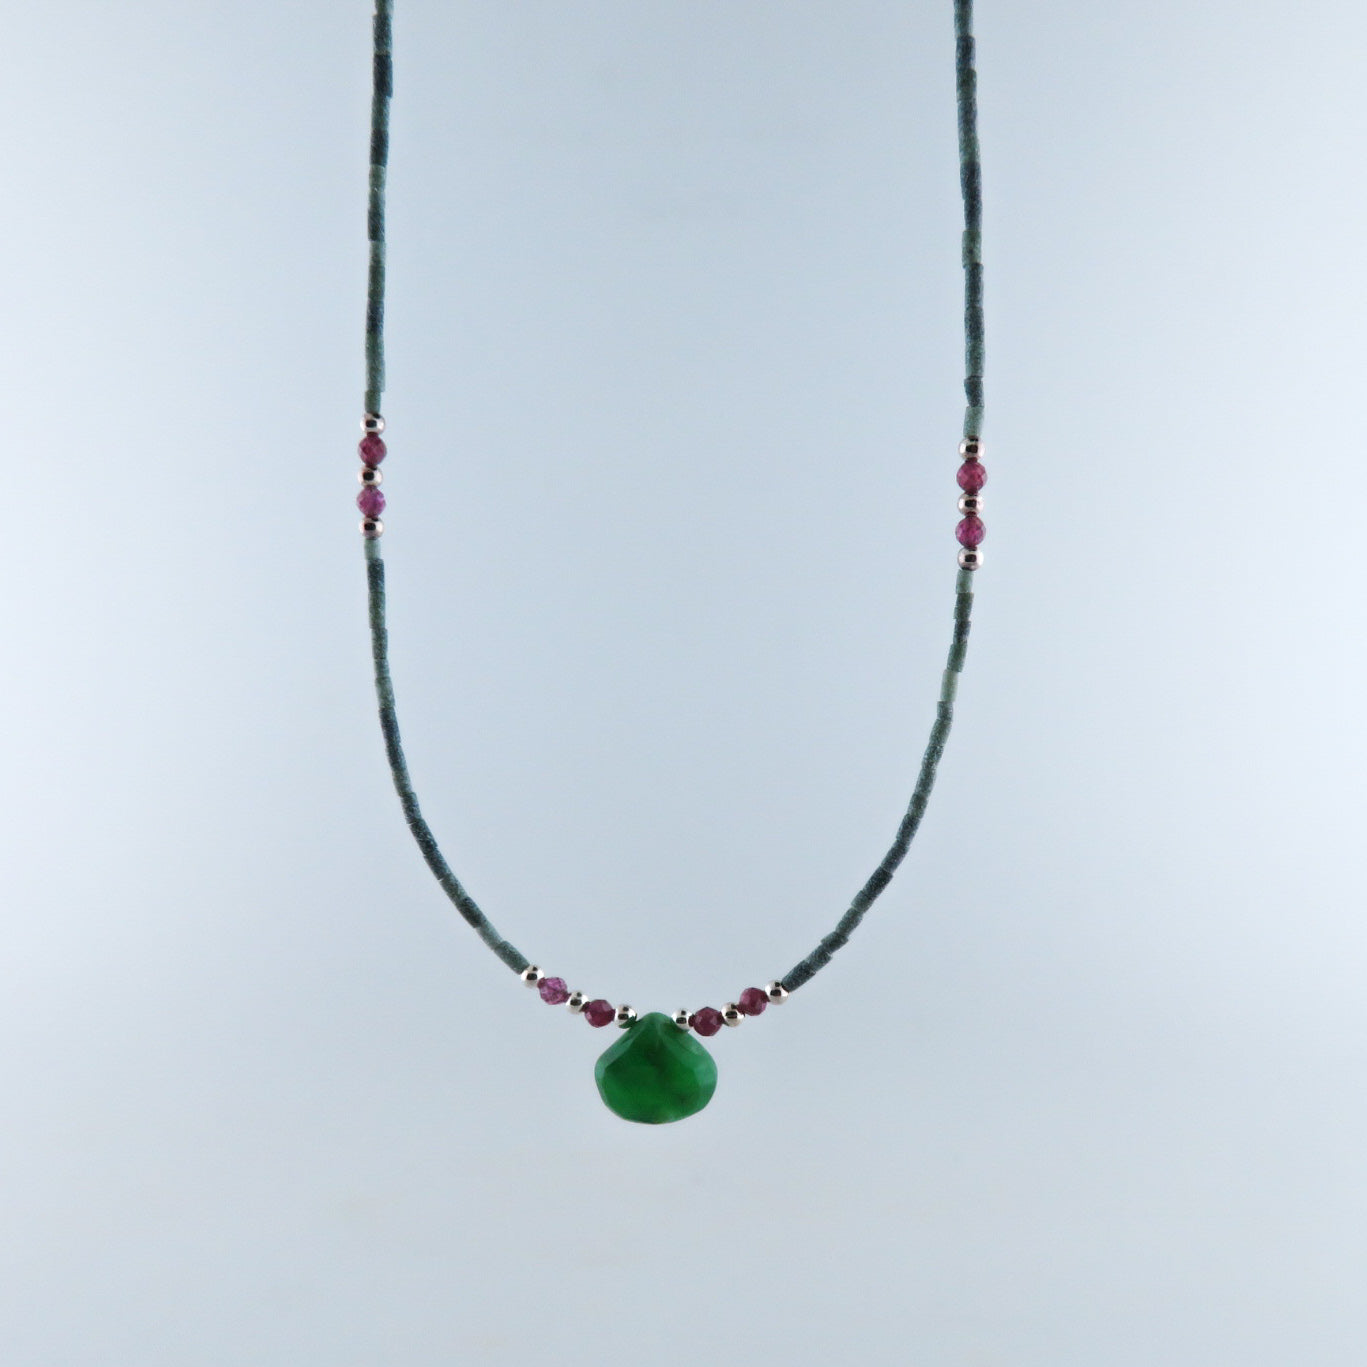 Jade Necklace with Chrysoprase, Garnet and Silver Beads